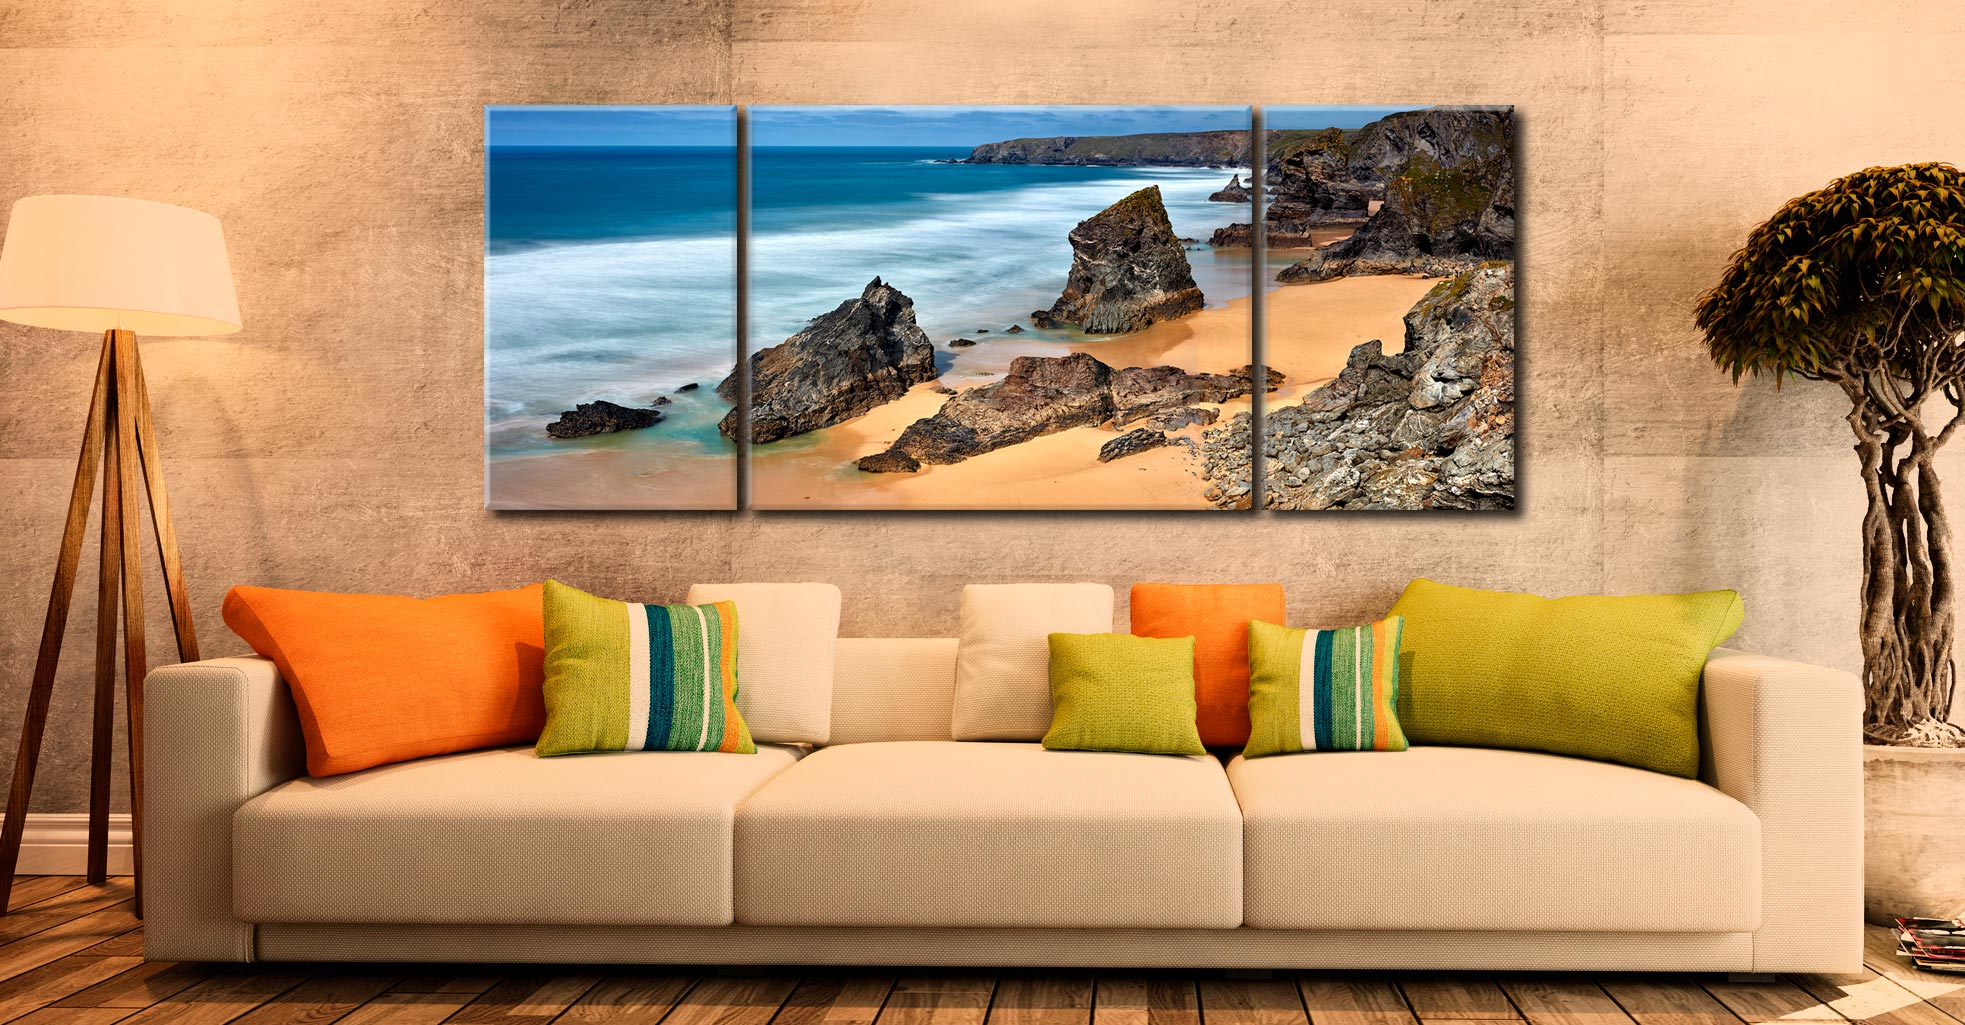 Postcard From Bedruthan Steps - 3 Panel Wide Mid Canvas on Wall